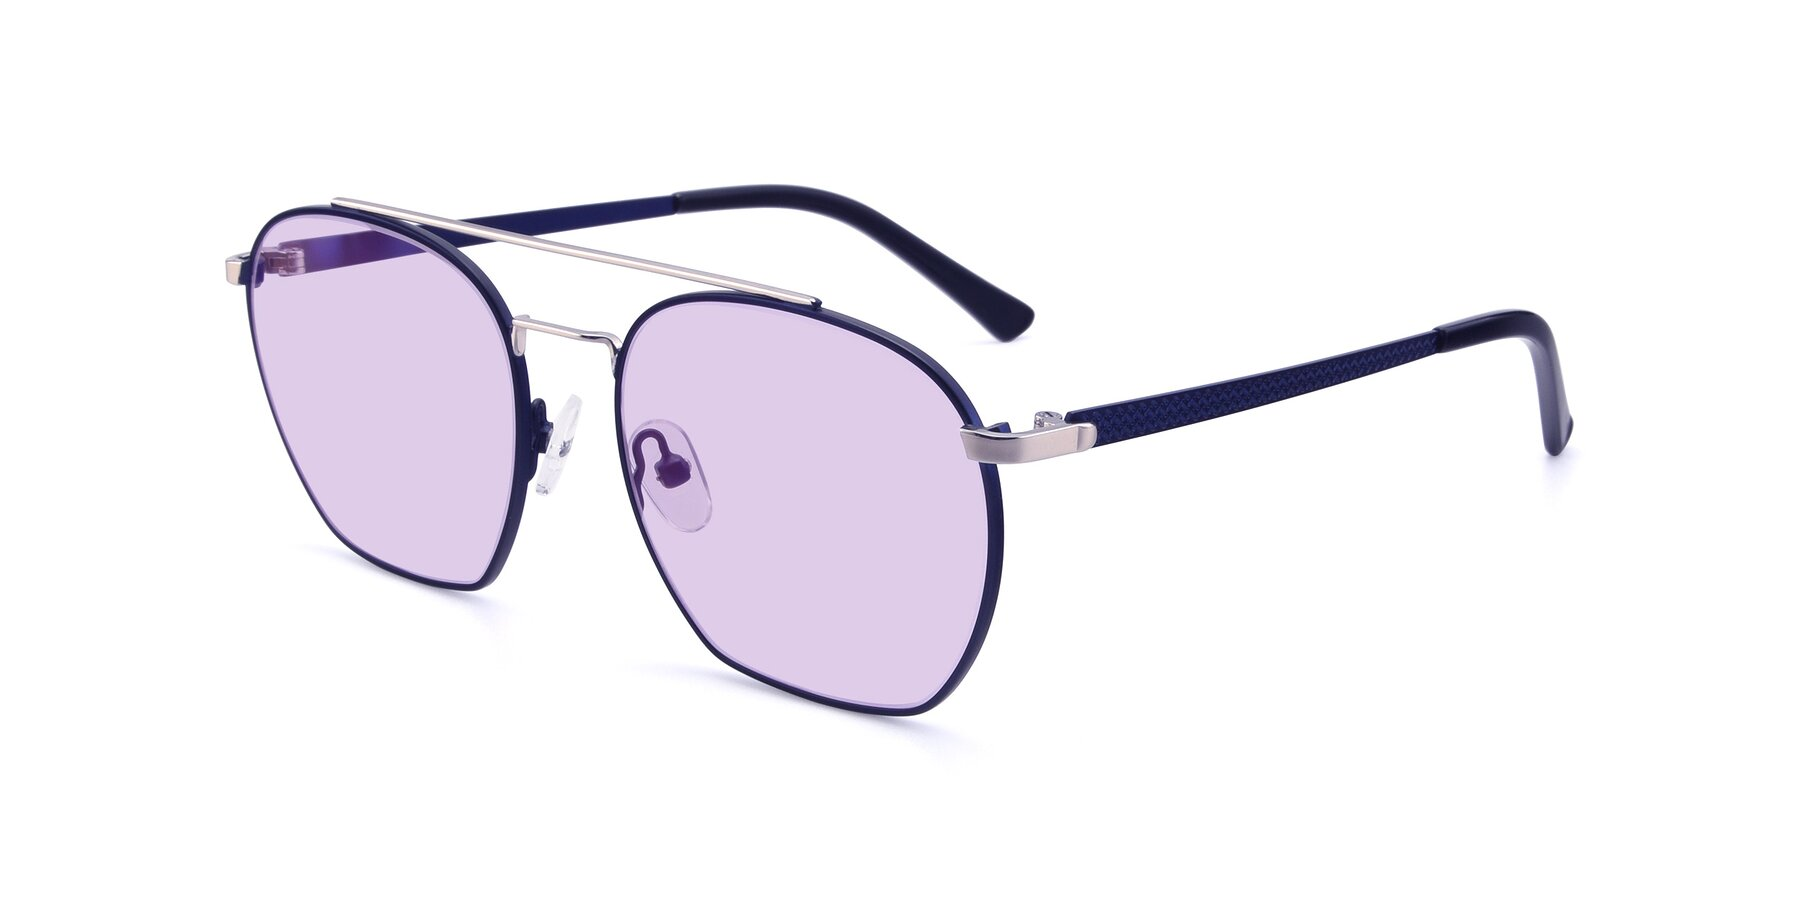 Angle of 9425 in Blue-Silver with Light Purple Tinted Lenses